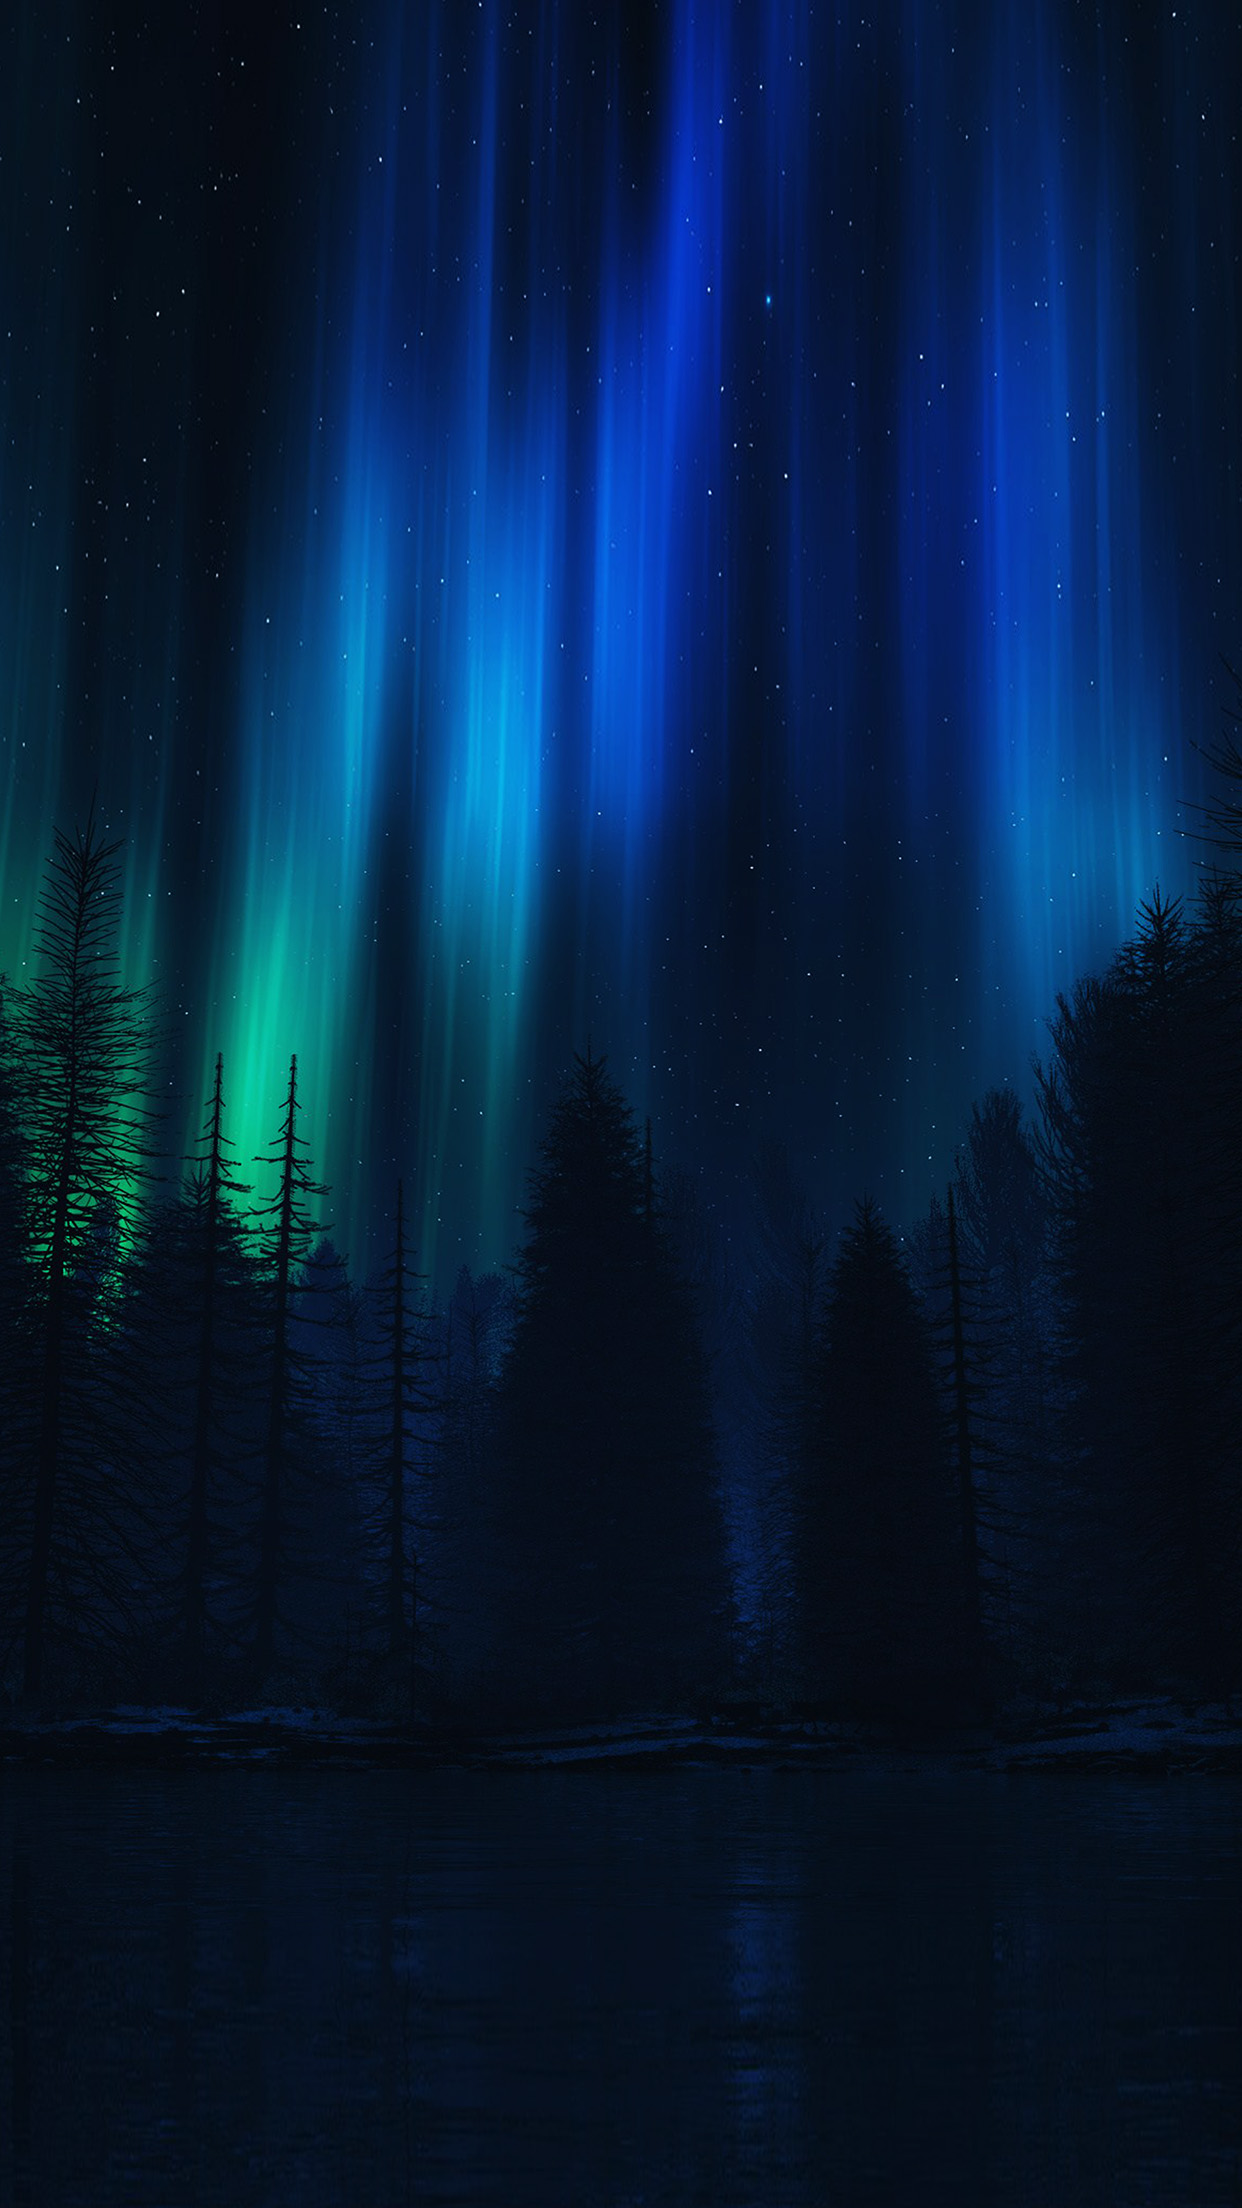 Hd Car Cell Phone Wallpaper Ao04 Aurora Night Sky Dark Blue Nature Art Papers Co